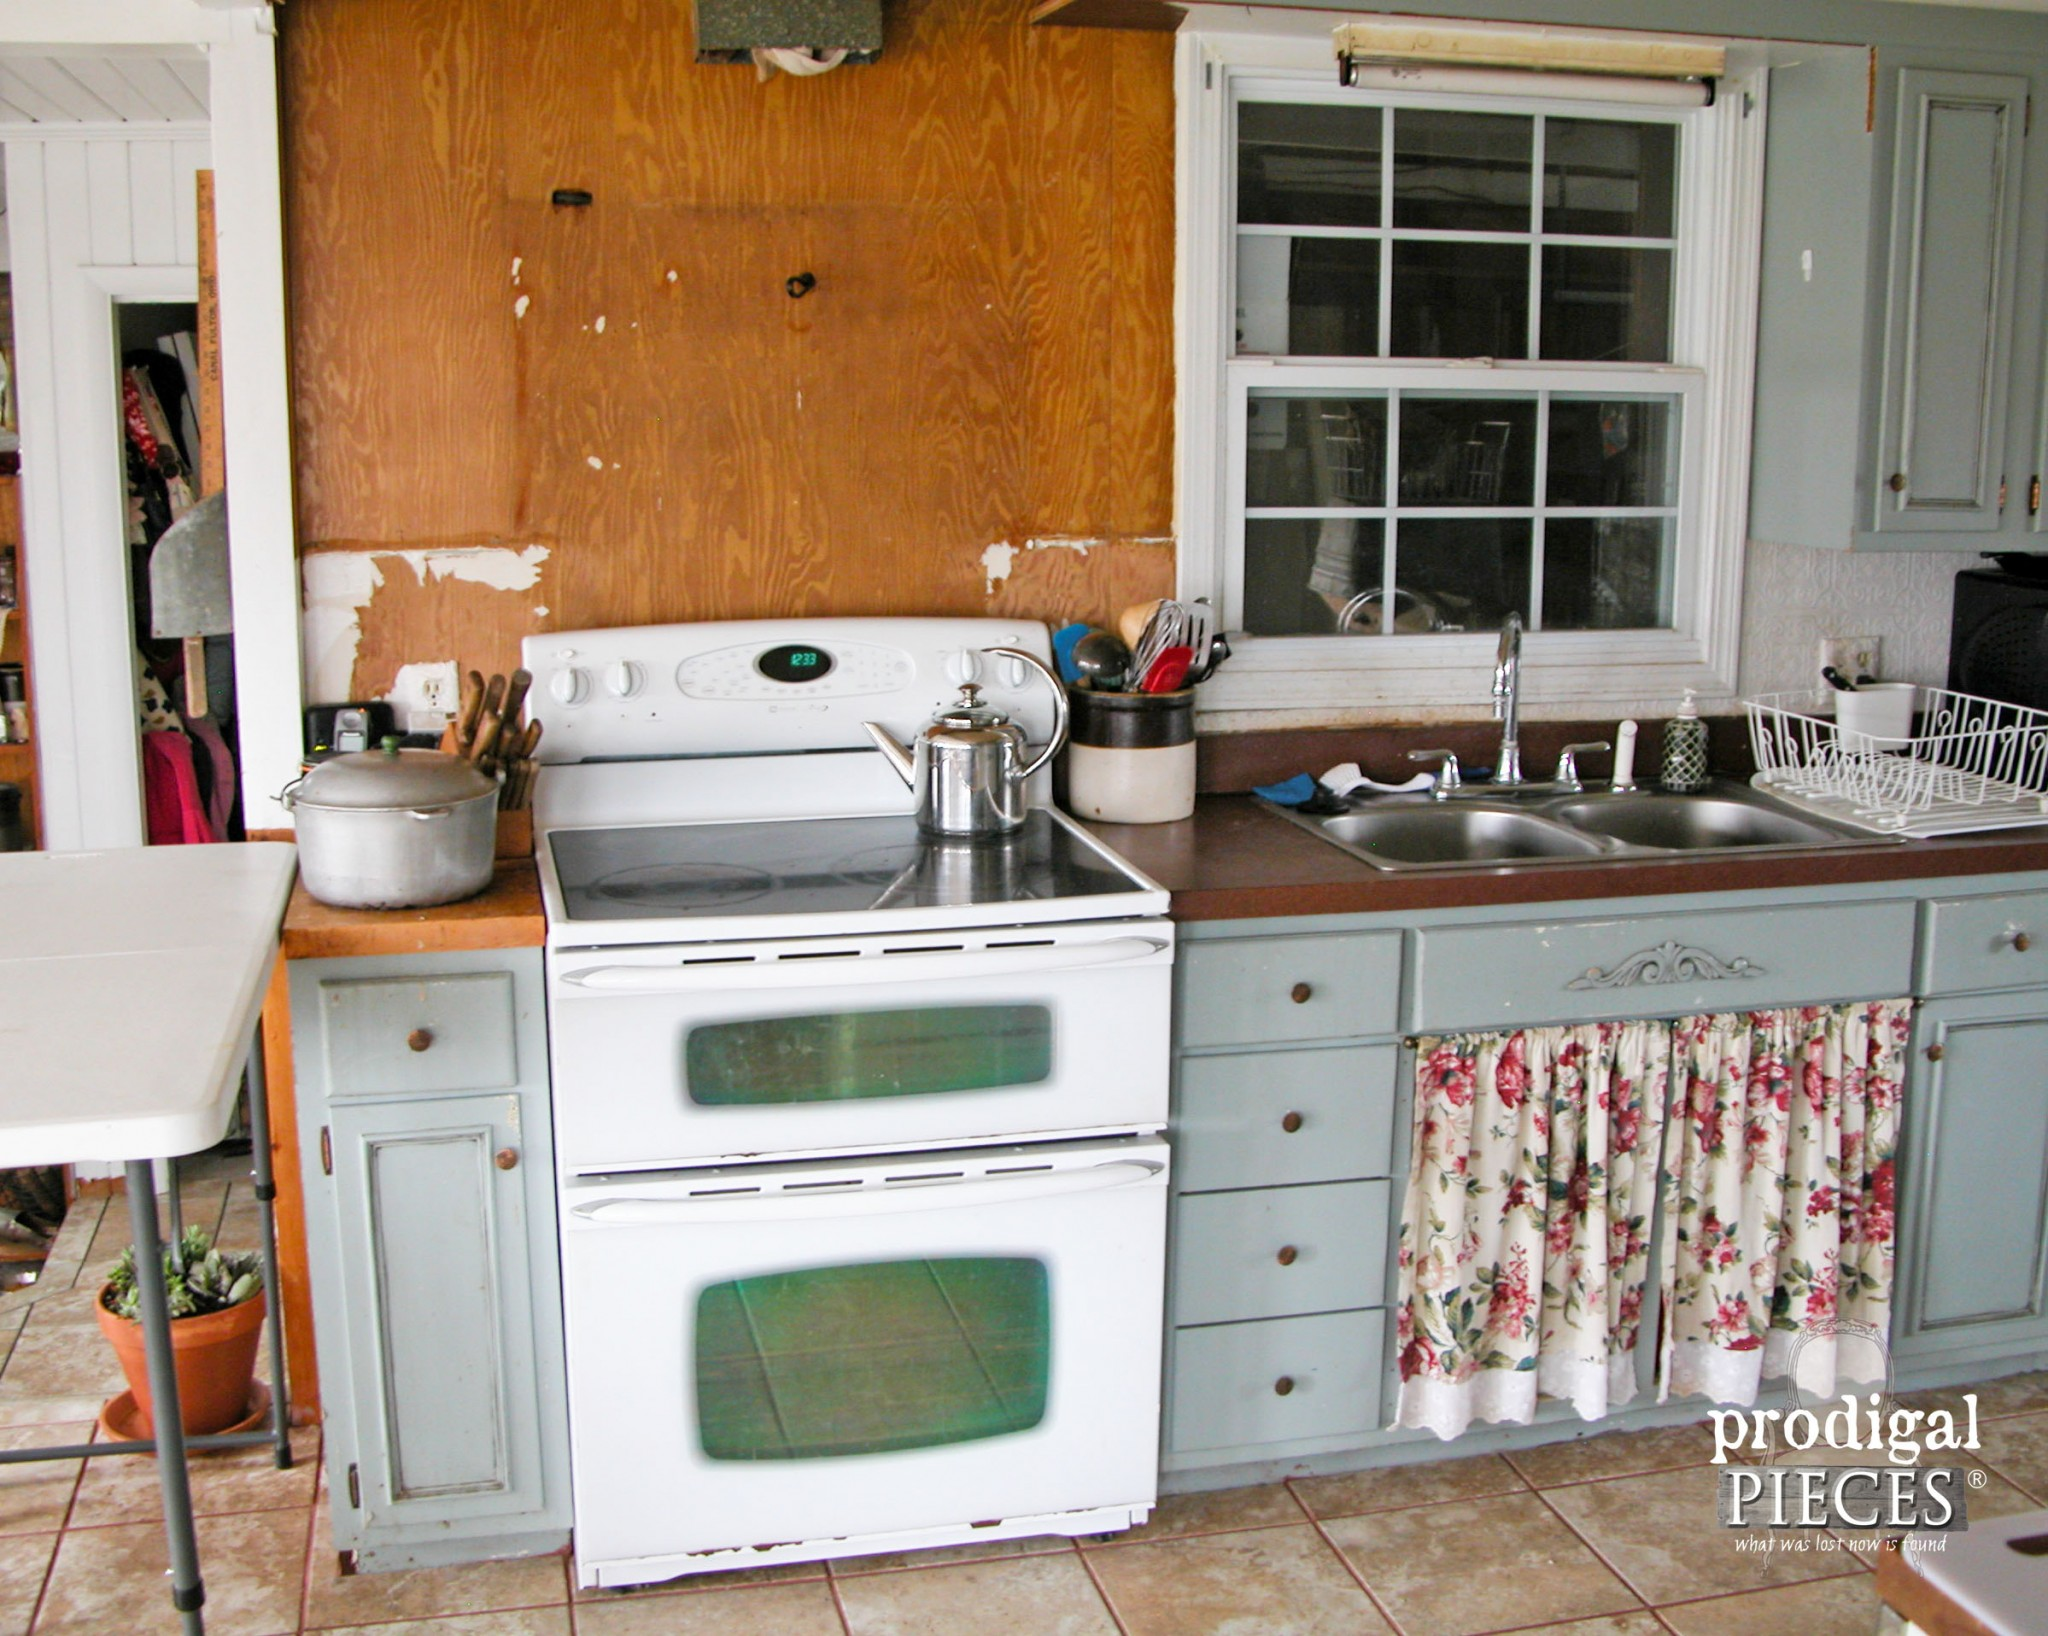 Electric Range Being Replaced by Gas Cooktop | Prodigal Pieces | www.prodigalpieces.com